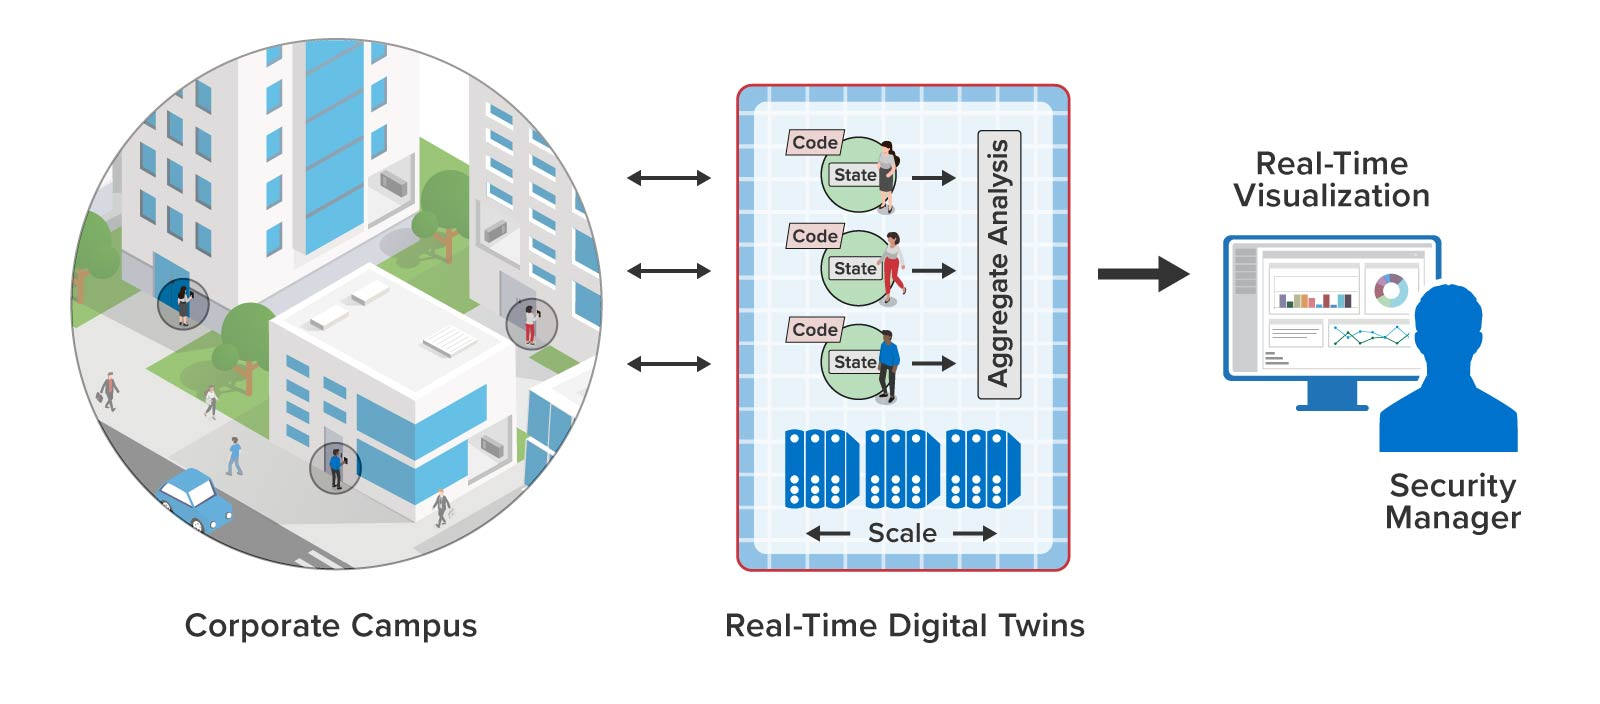 Key card access control using real-time digital twins for authorization